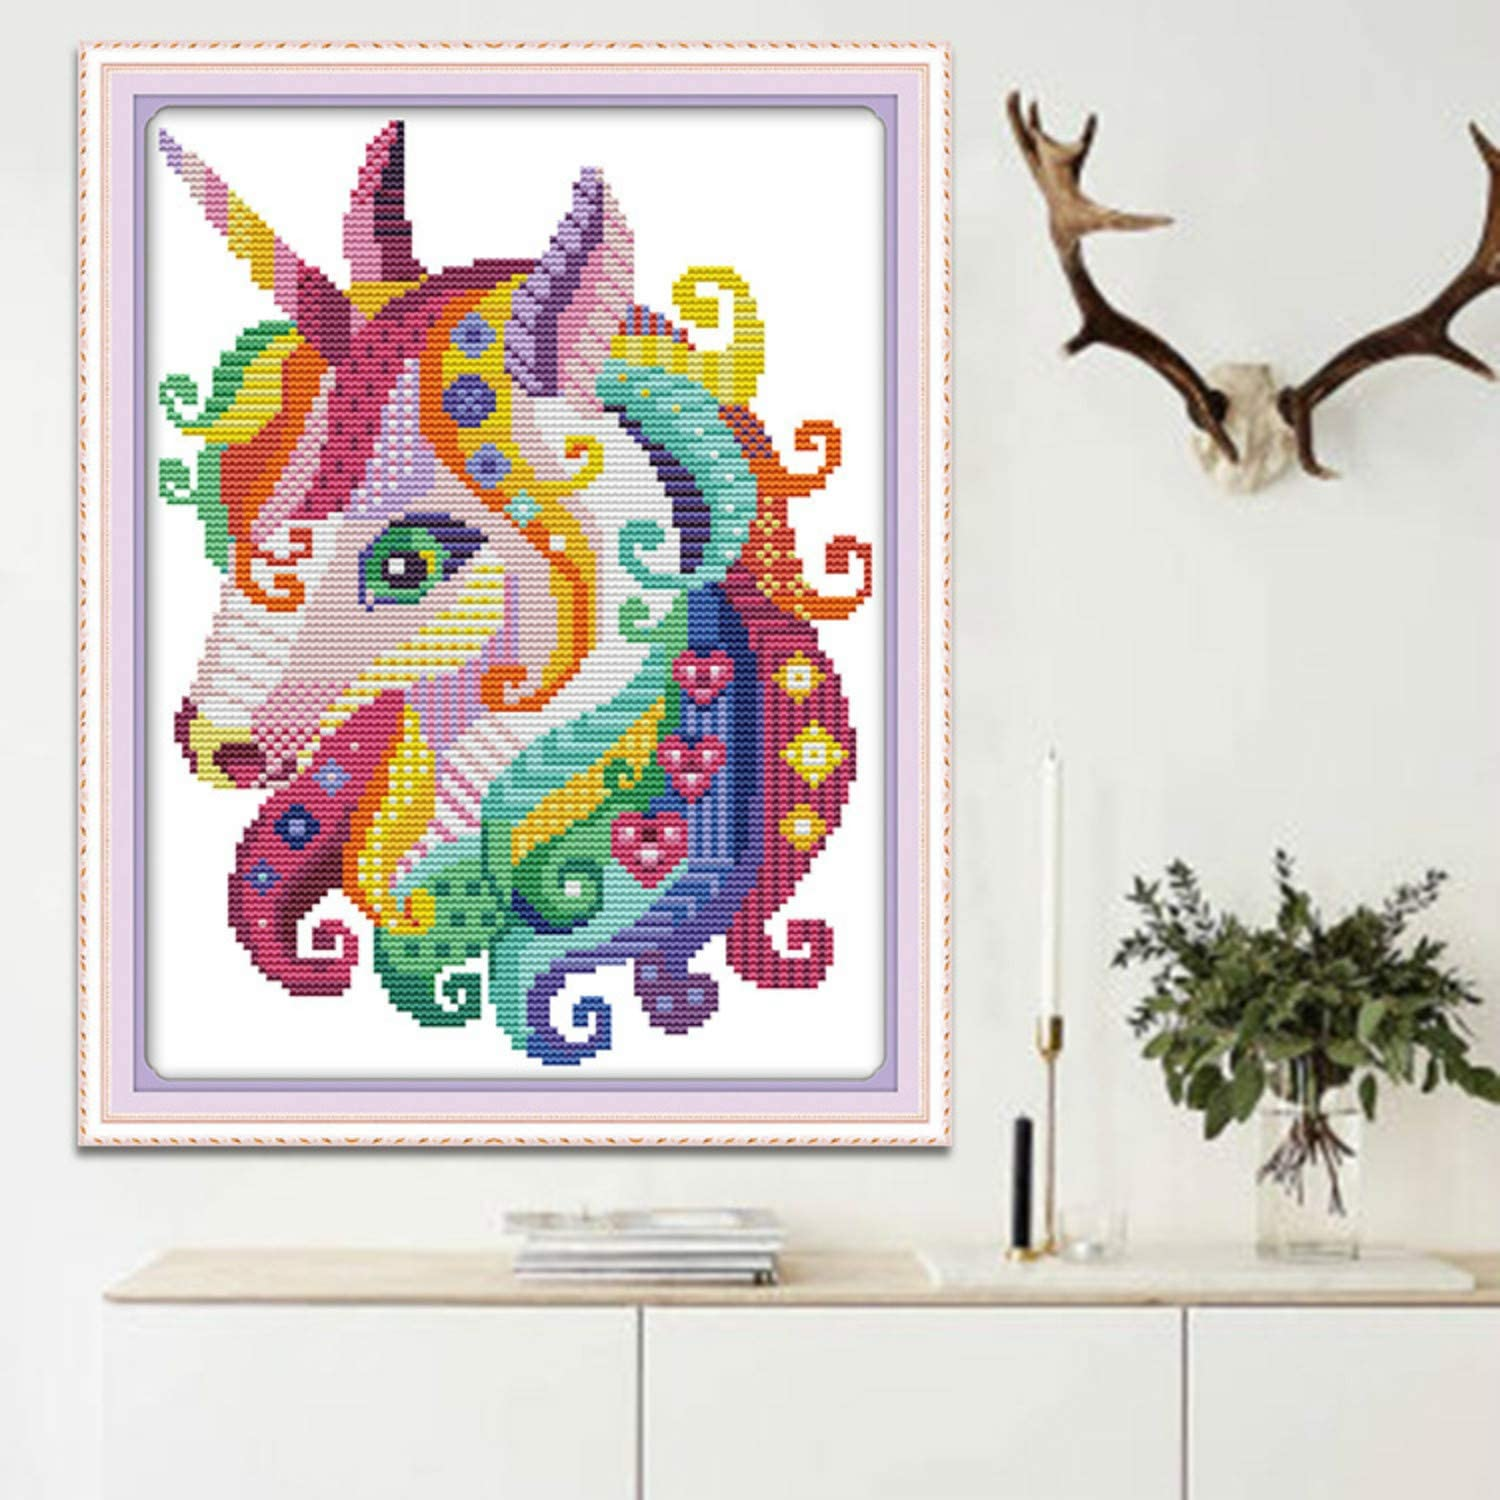 Embroidery Crafts Needlepoint Starter Kits for Home Wall Decor Premium Stamped Cross Stitch Kits with Pre-Printed Patterns for Beginner Kids Adults Cross-Stitch Stamped Kits Stamped Fox 28x38 cm